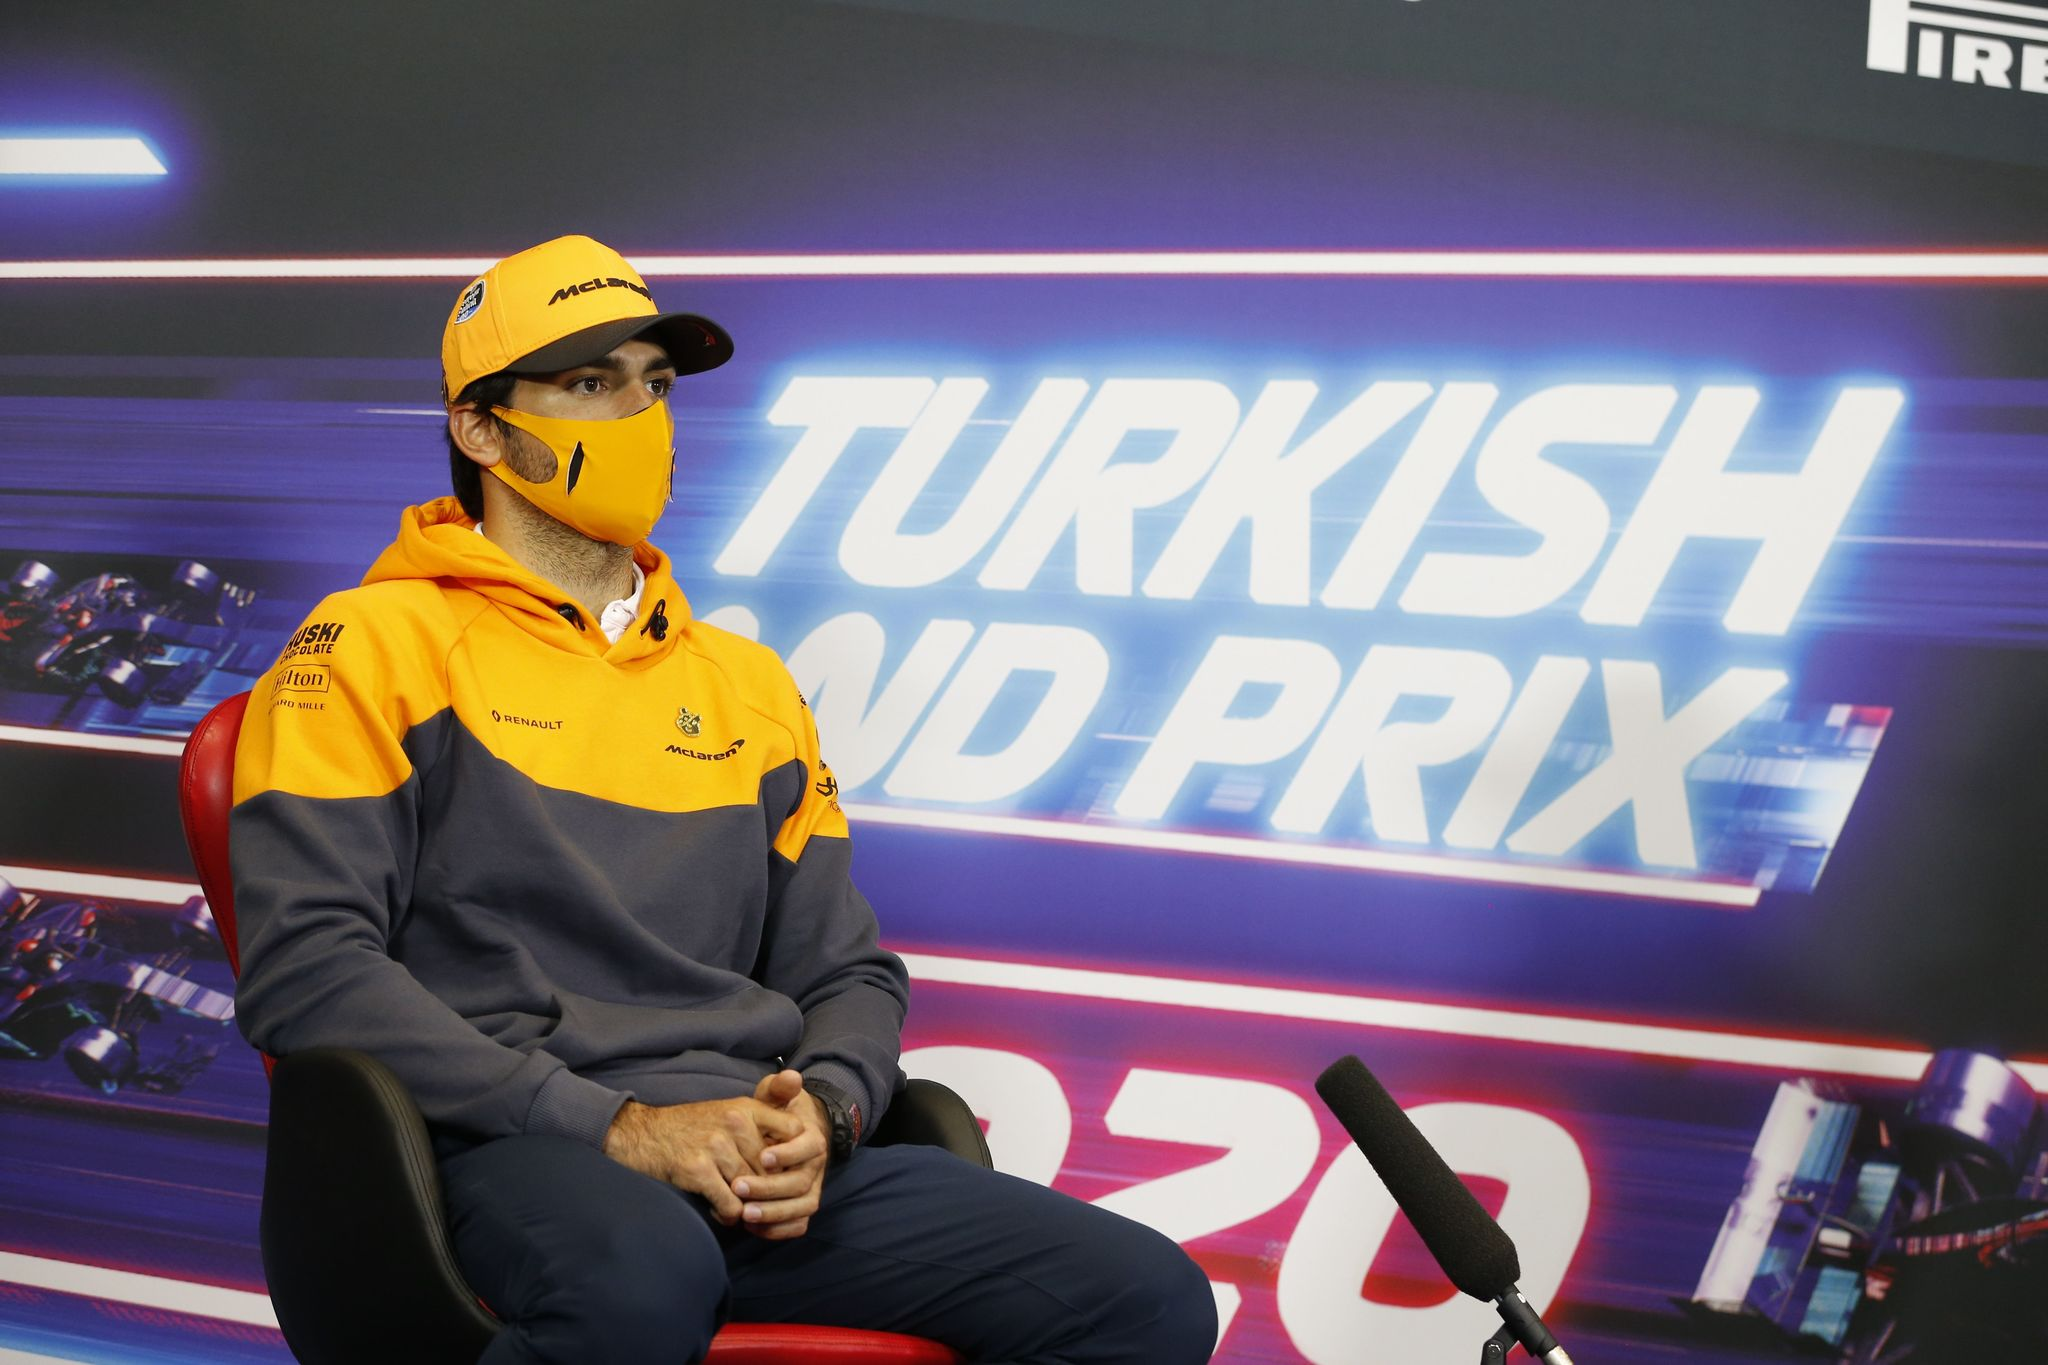 """This handout photo taken and released by FIA on November 12, 2020, shows McLaren's Spanish driver Carlos lt;HIT gt;Sainz lt;/HIT gt; Jr giving a press conference ahead of the Formula One Turkish Grand Prix at the Intercity Istanbul Park in Tuzla, near Istanbul. - The Formula One Turkish Grand Prix is held on November 15, 2020, at Intercity Istanbul Park. (Photo by Antonin Vincent / FIA / AFP) / RESTRICTED TO EDITORIAL USE - MANDATORY CREDIT """"AFP PHOTO / FIA / ANTONIN VINCENT- NO MARKETING NO ADVERTISING CAMPAIGNS - DISTRIBUTED AS A SERVICE TO CLIENTS"""